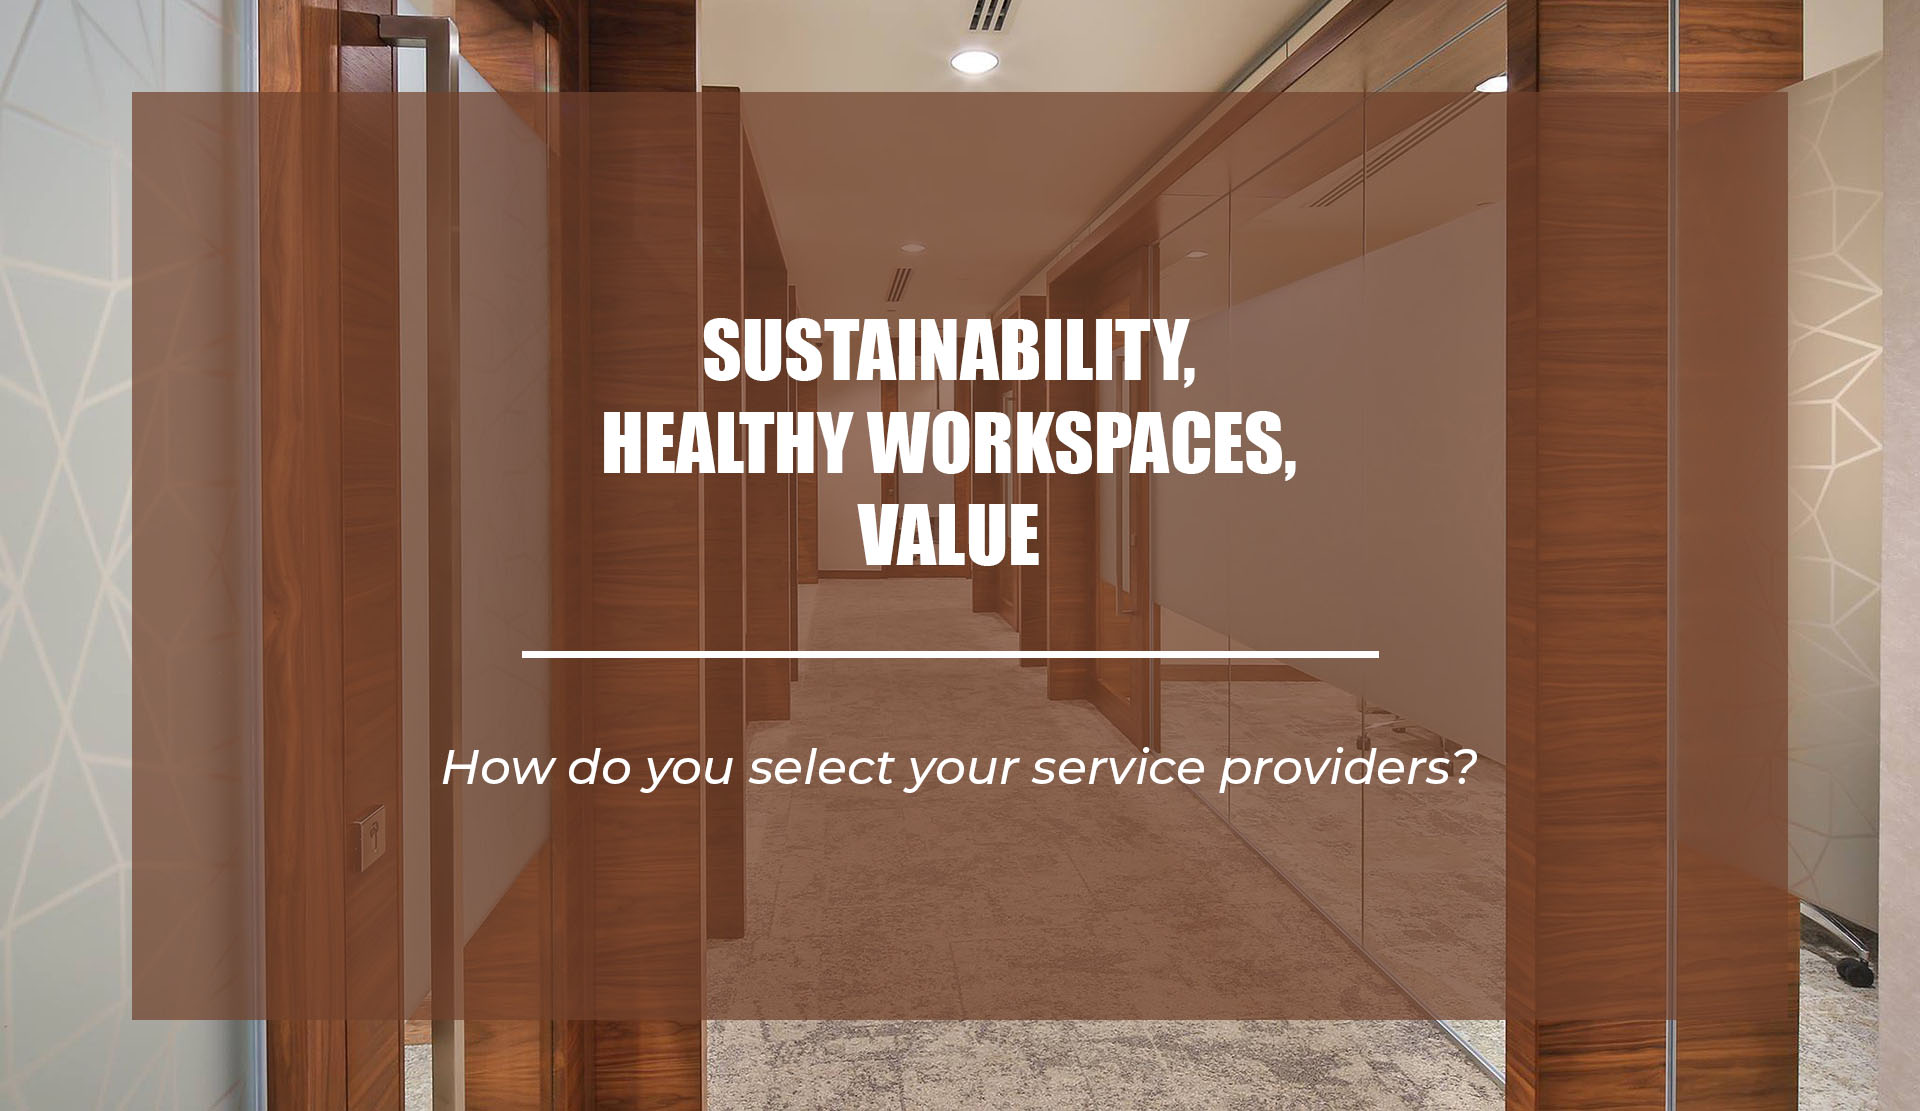 SUSTAINABILITY, HEALTHY WORKSPACES, VALUE